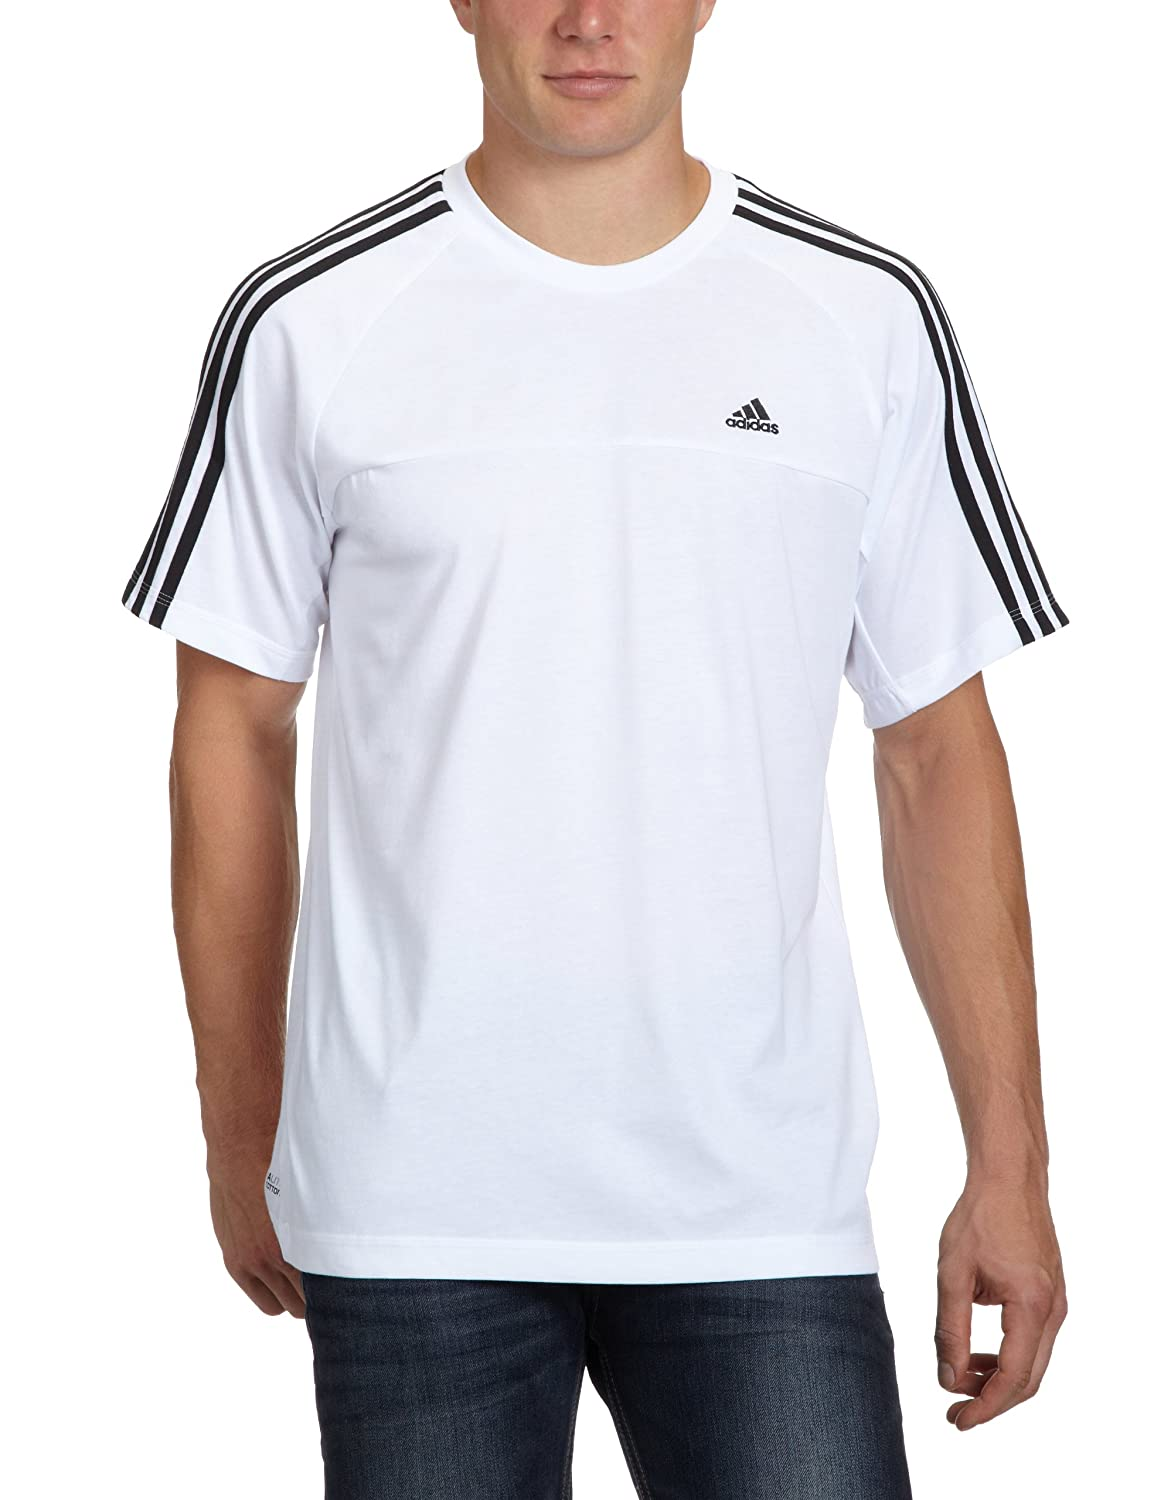 adidas Essentials 3-Stripes Men's Crew Neck T-Shirt: adidas: Amazon.co.uk:  Sports & Outdoors